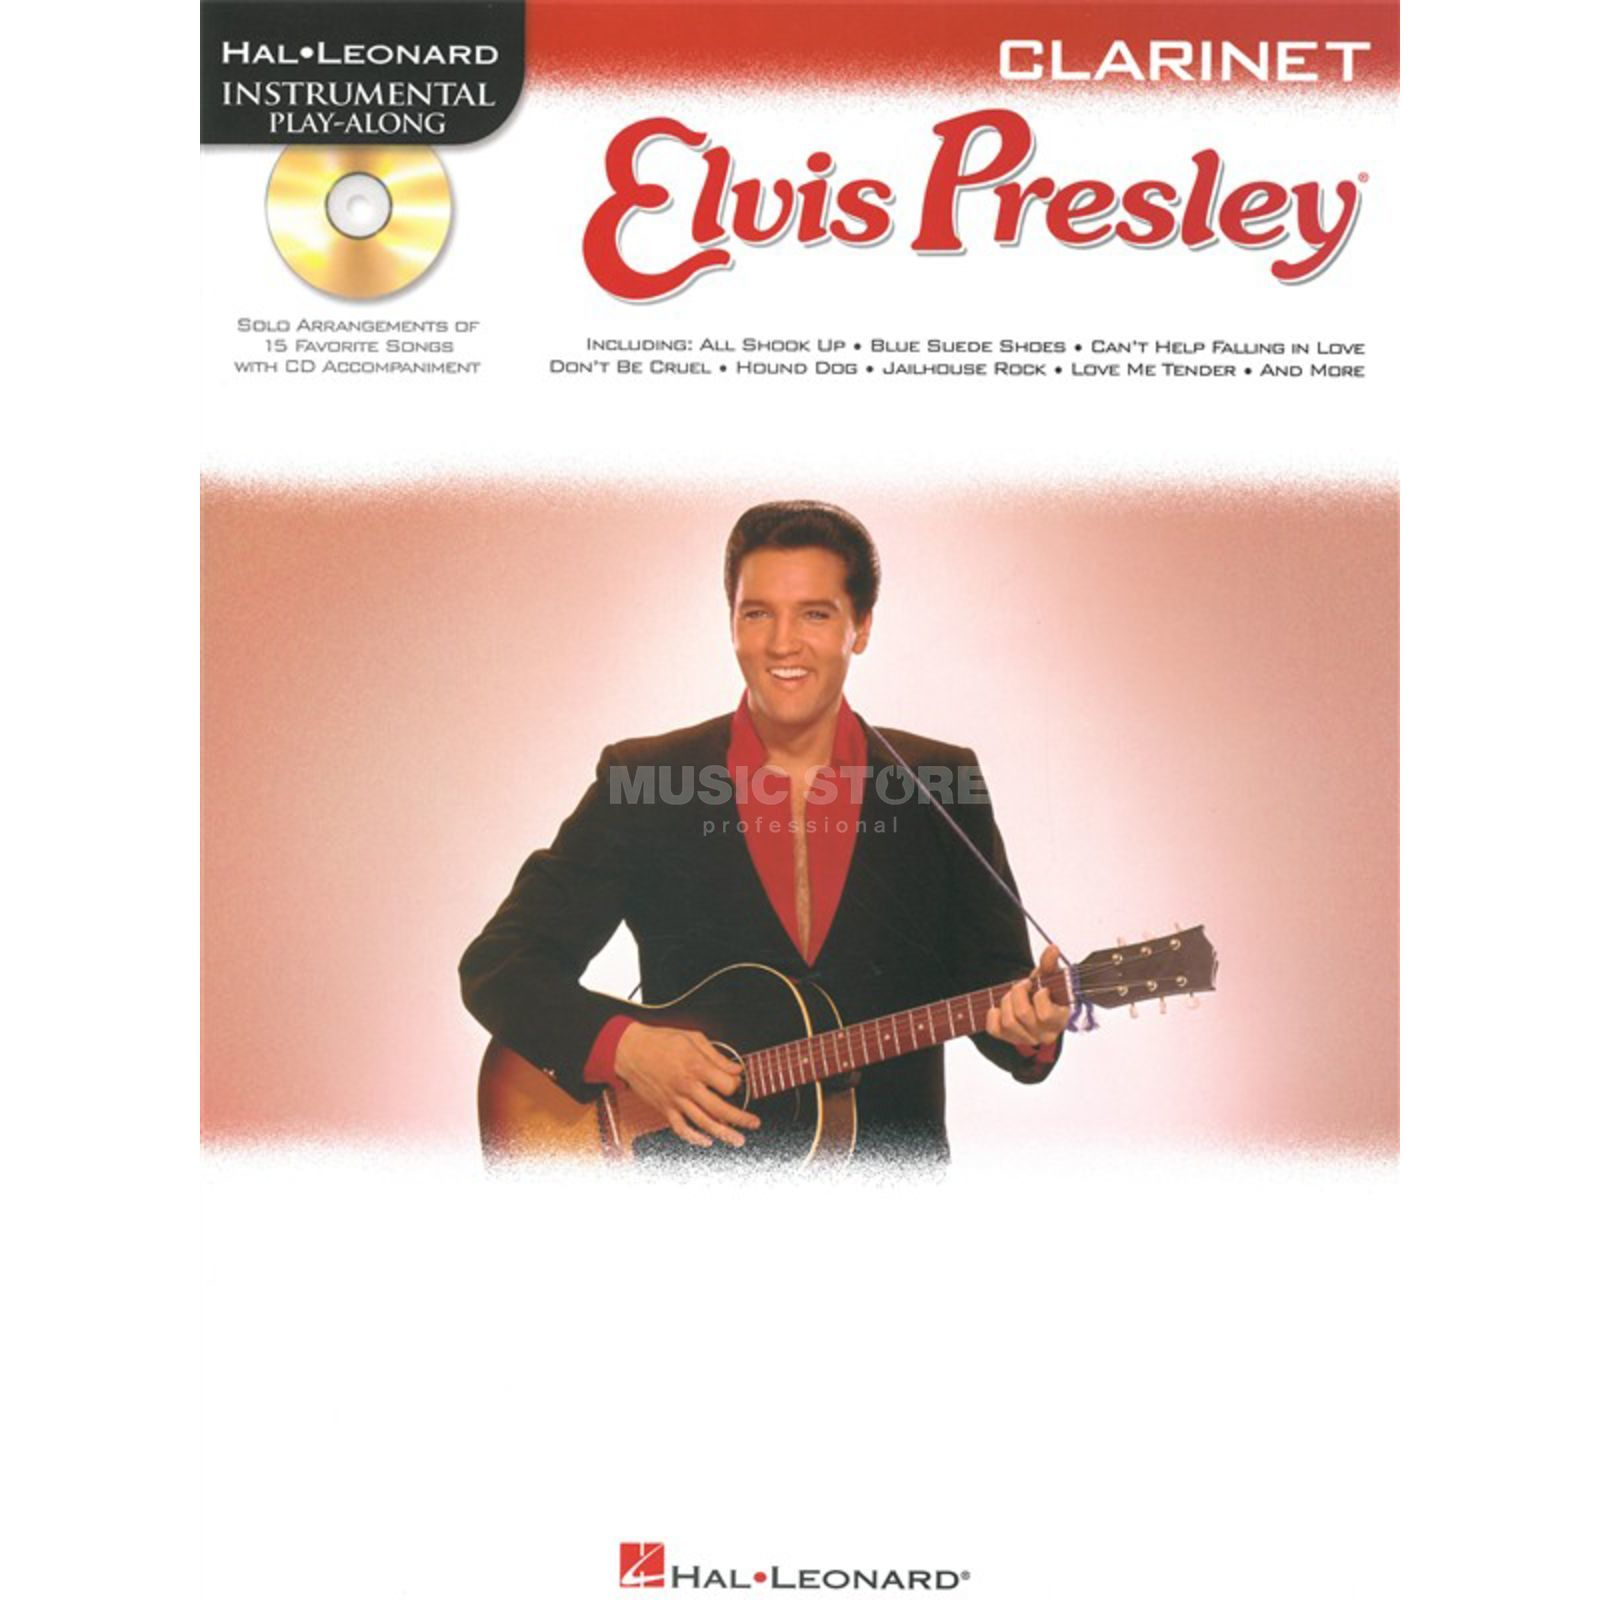 Hal Leonard Elvis Presley - Play-Along Clarinet & CD Produktbillede